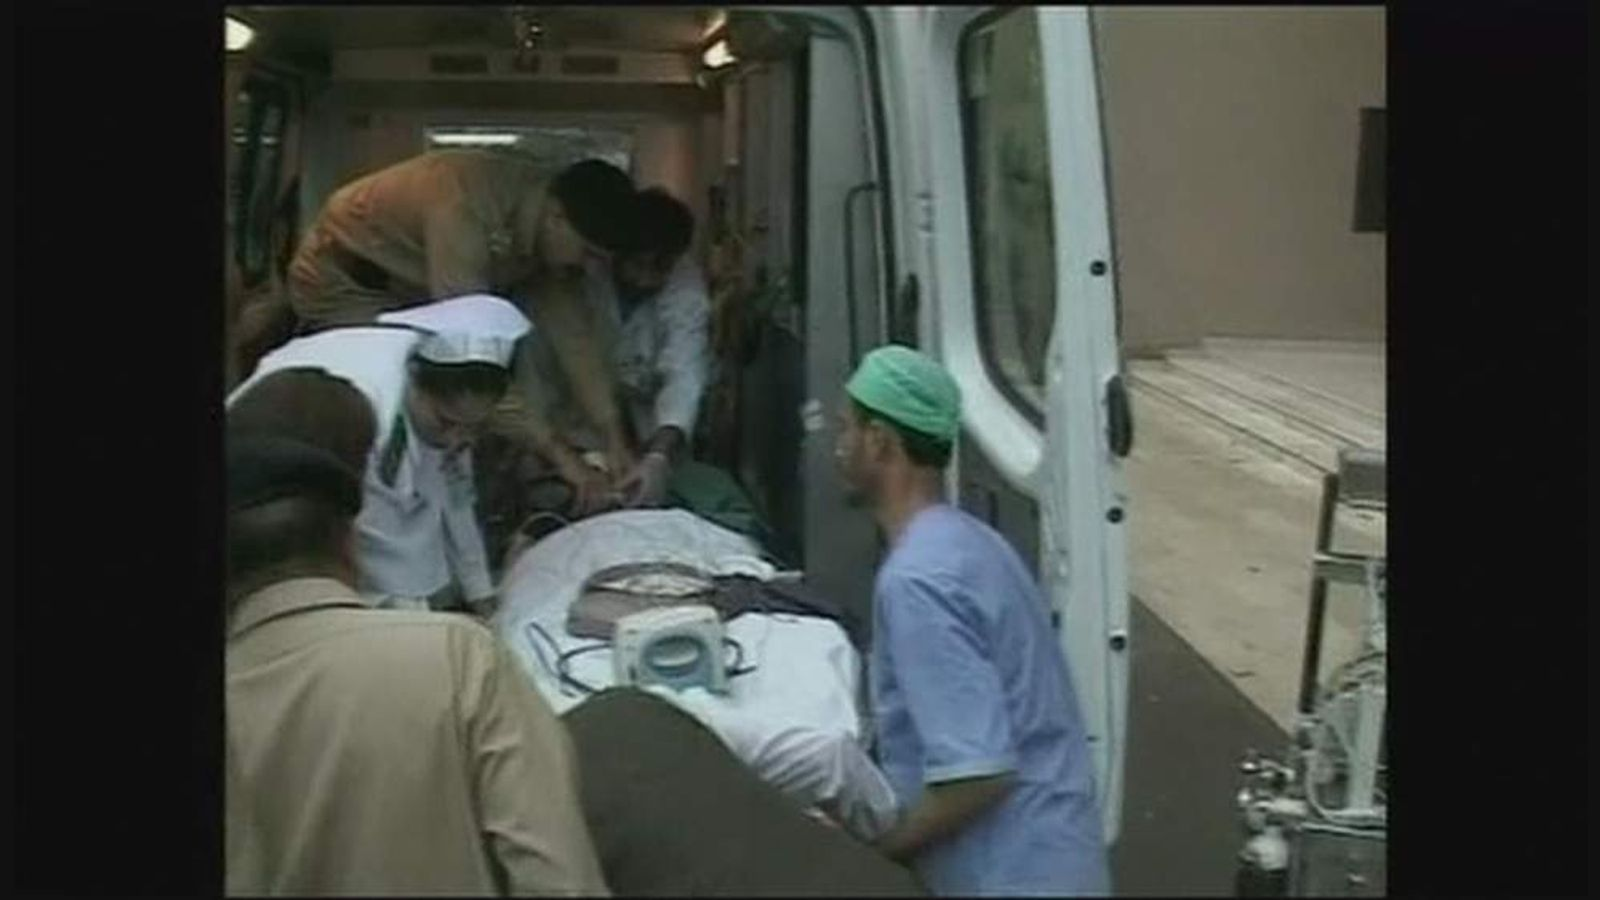 Malala Yusufzai, girl shot by the Taliban, is transferred to UK